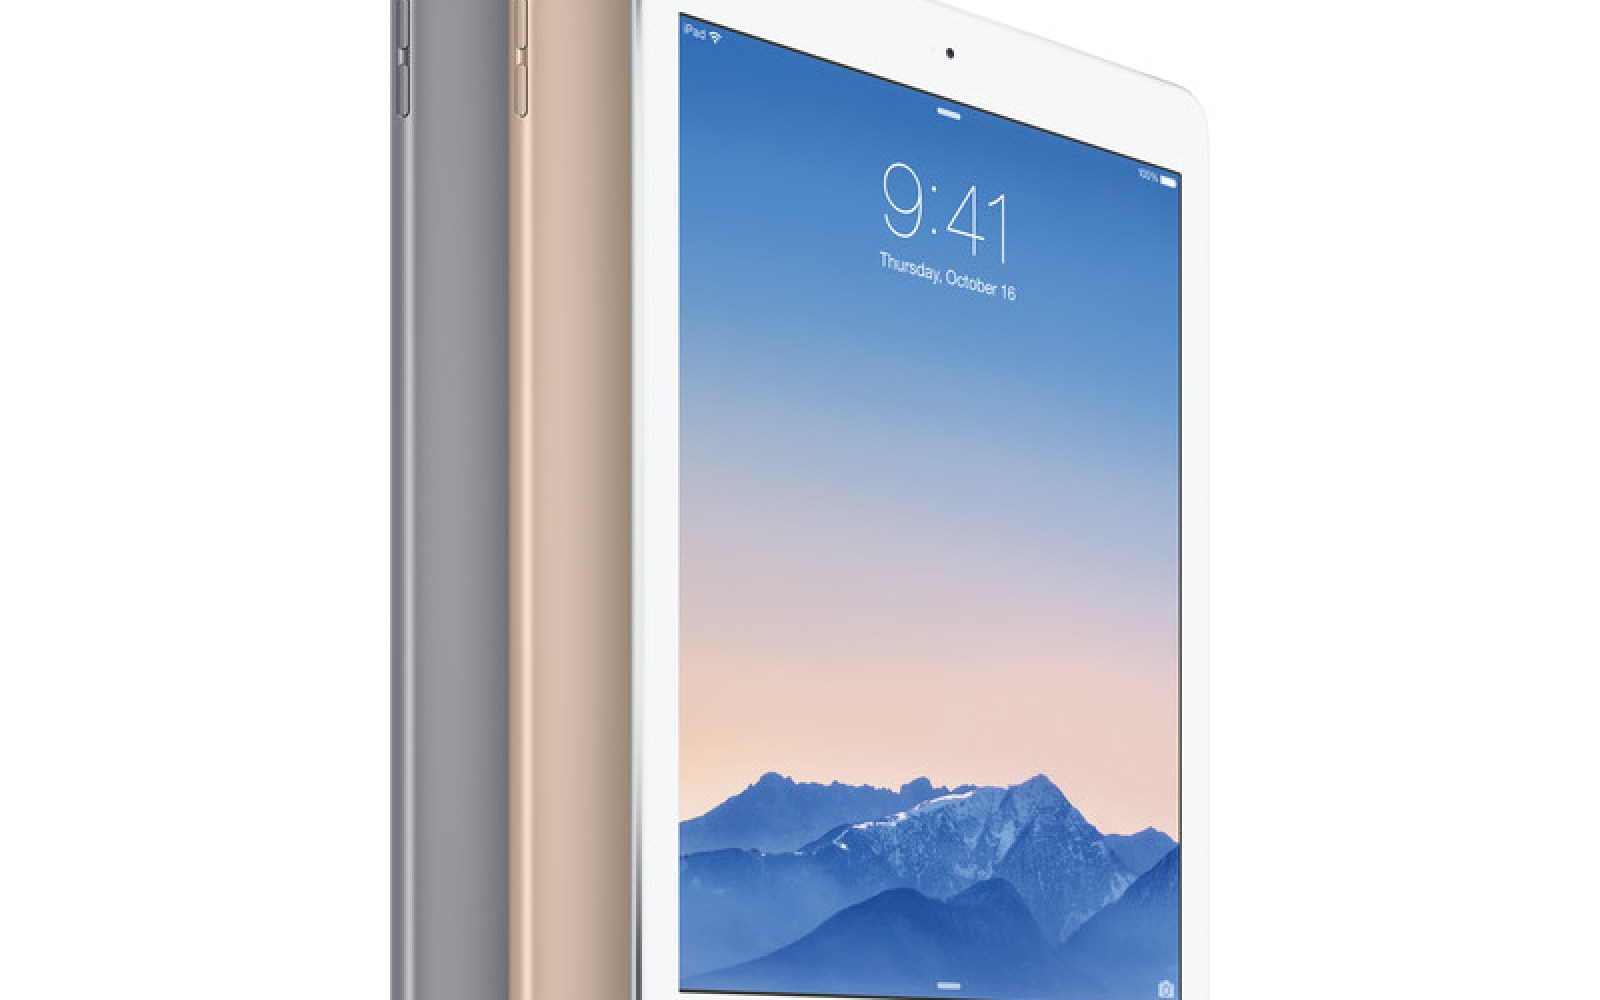 iPad Air 2 estimated to cost $275 in materials, Apple pays just $60 for 128 GB storage upgrade